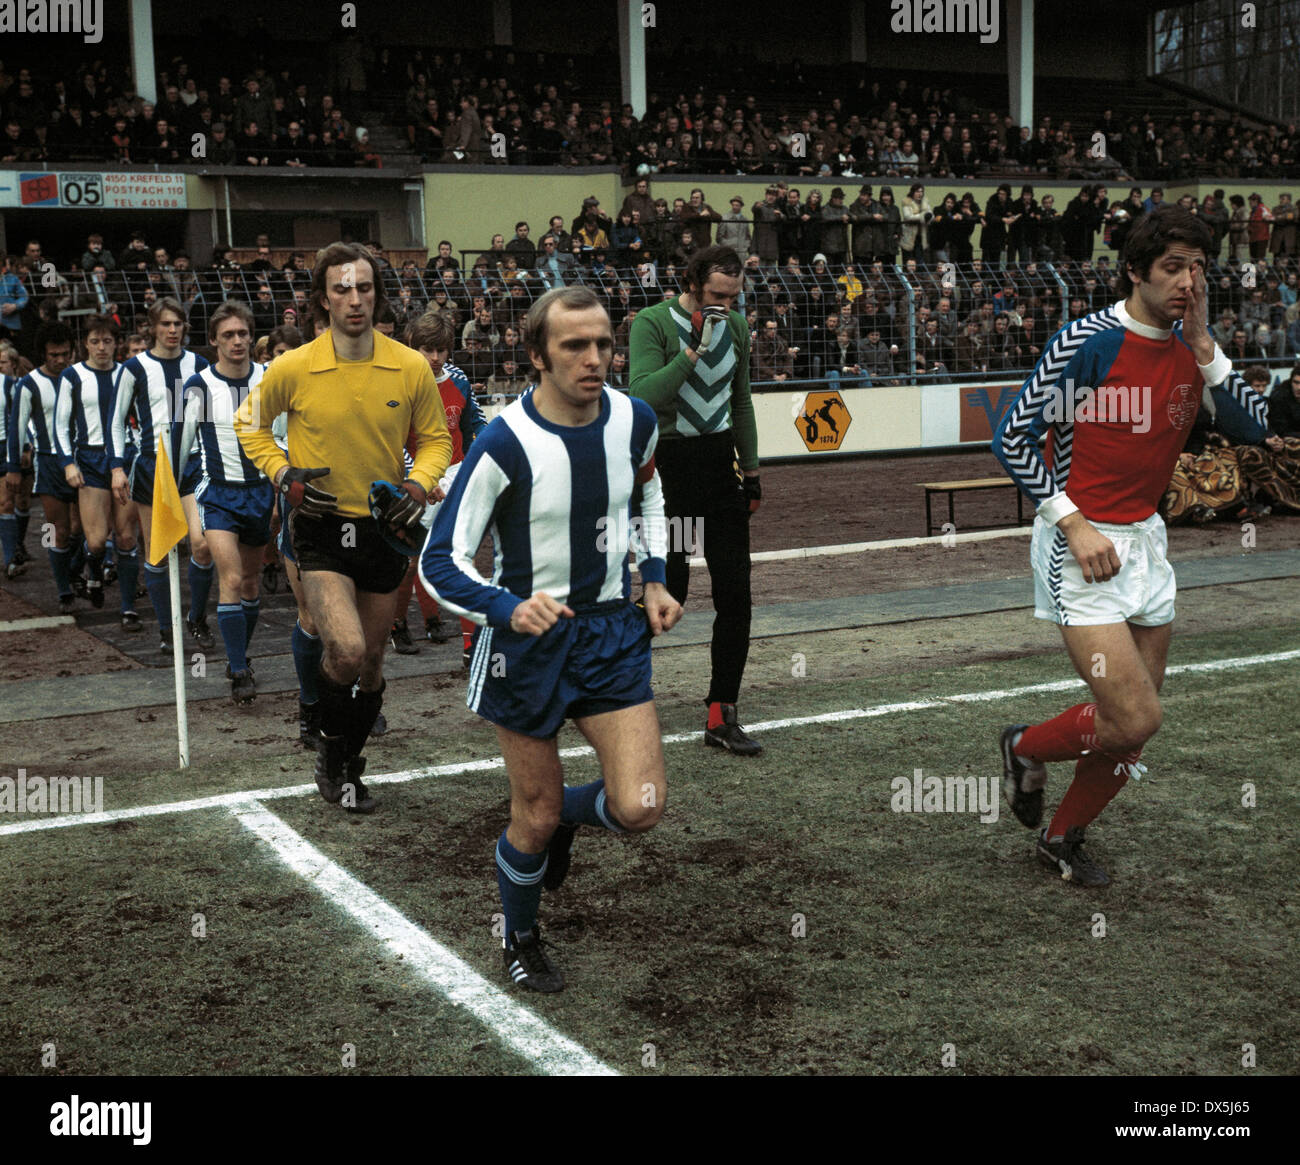 football, Bundesliga, 1975/1976, Grotenburg Stadium, FC Bayer 05 Uerdingen versus Hertha BSC Berlin 1:1, running-in of the teams, ahead the team leaders Erich Beer (Hertha) left and Paul Hahn (05), behind the keepers Thomas Zander (Hertha) left and Manfre - Stock Image